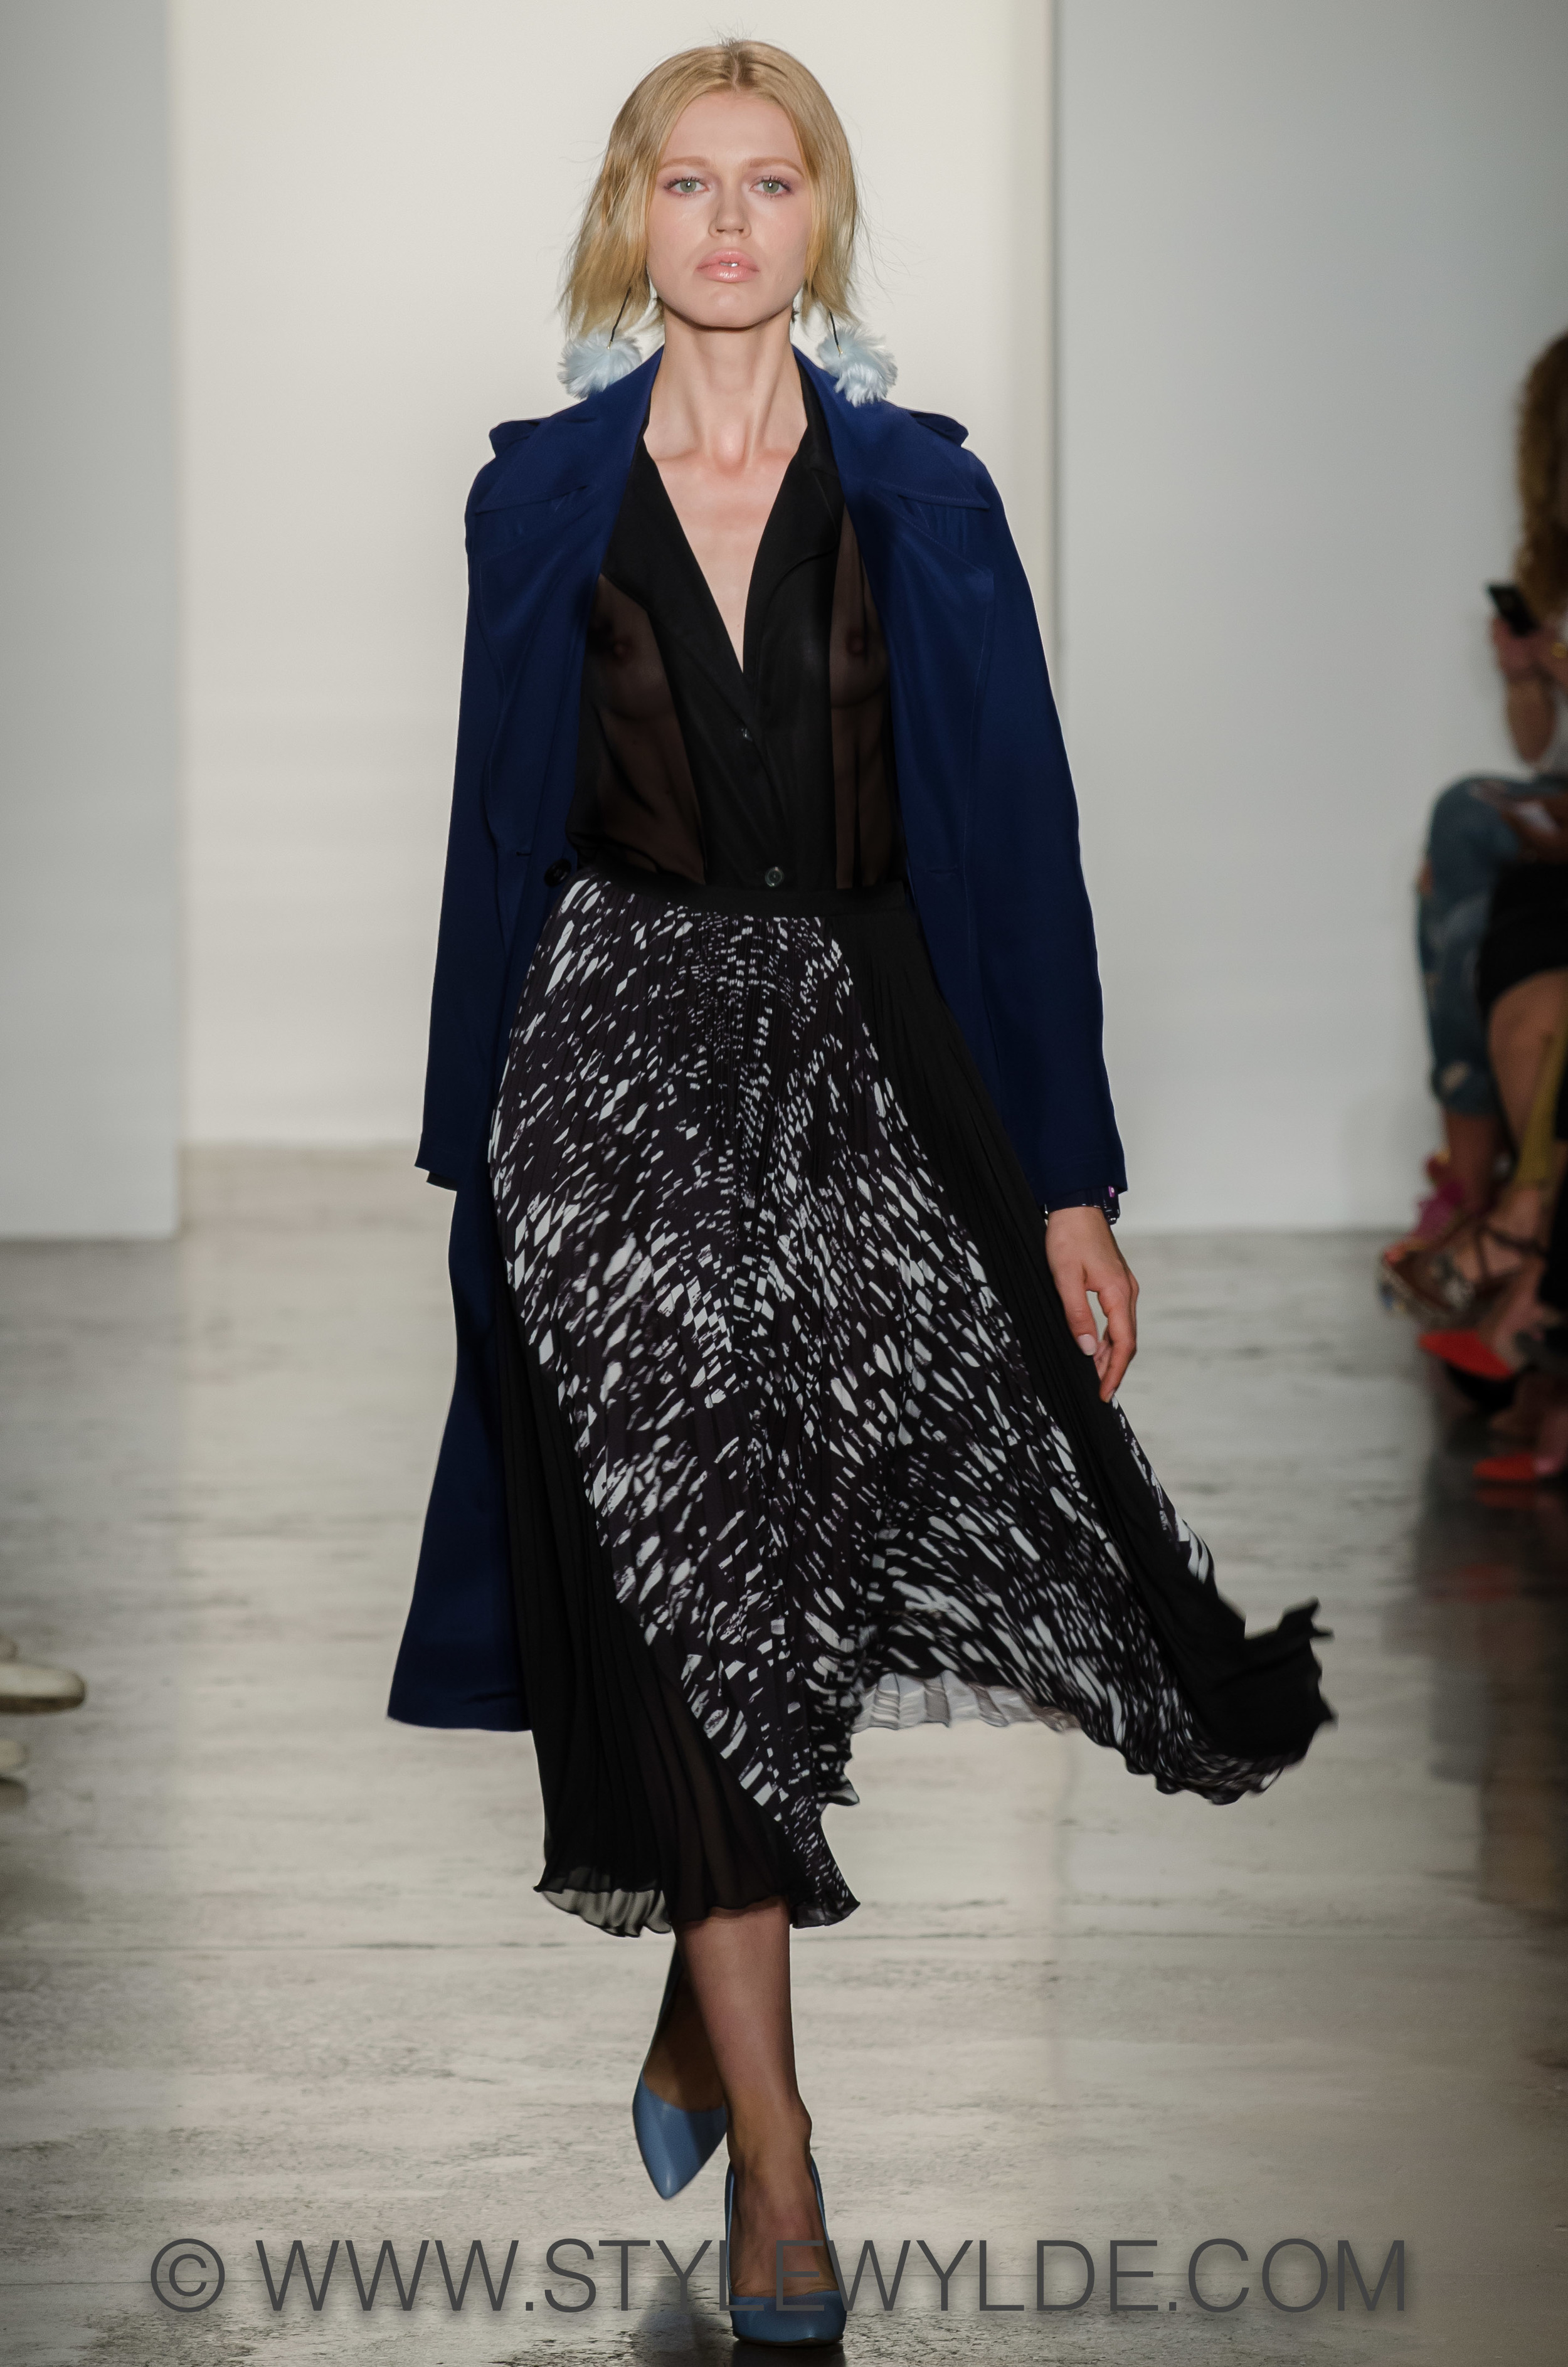 StyleWylde_Timo_SS15_FOH (1 of 38).jpg